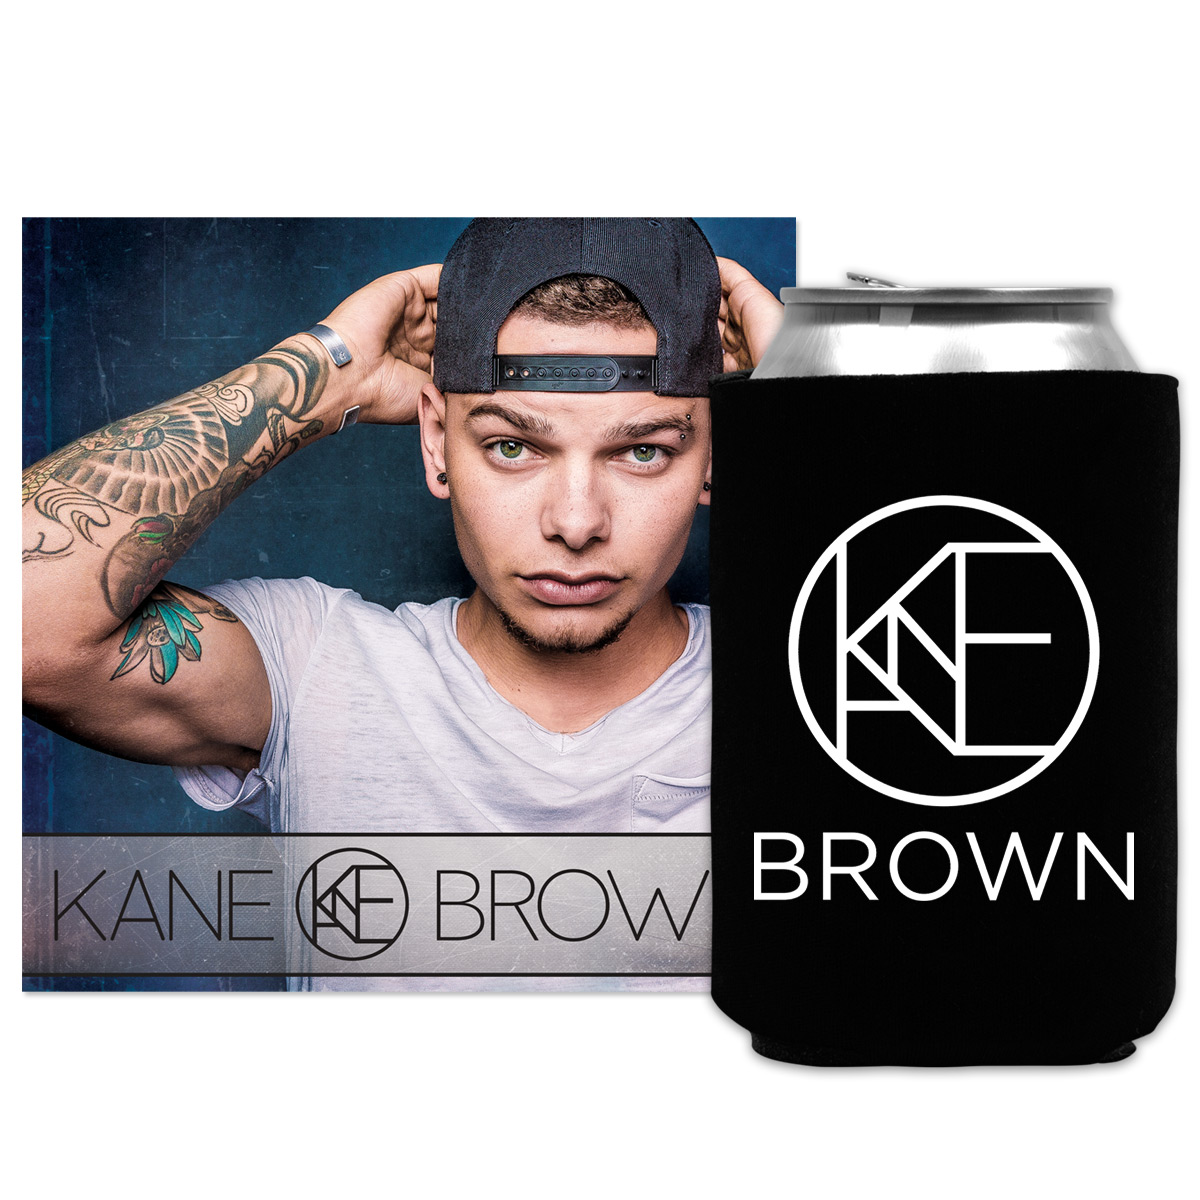 Kane Brown Deluxe Edition Kane Brown: Kane Brown Album + Koozie Bundle